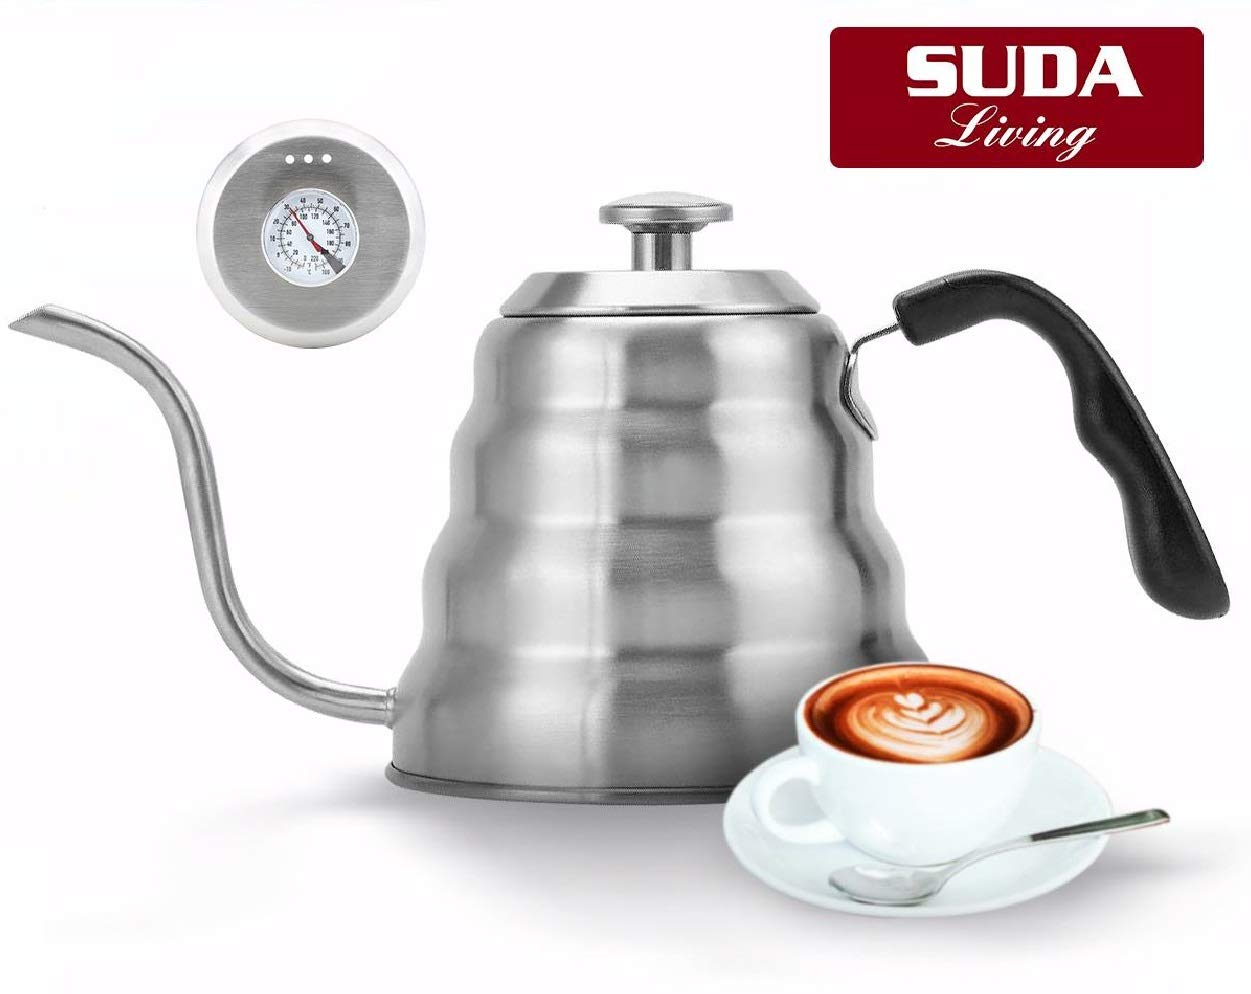 Pour over Coffee Kettle by Suda Living - with built-in Thermometer and Stainless Steel -Hario style Water Pot and Teapot -Works on all Stovetops -Rust Free and No Leak -Gooseneck Design -40oz/1.2L